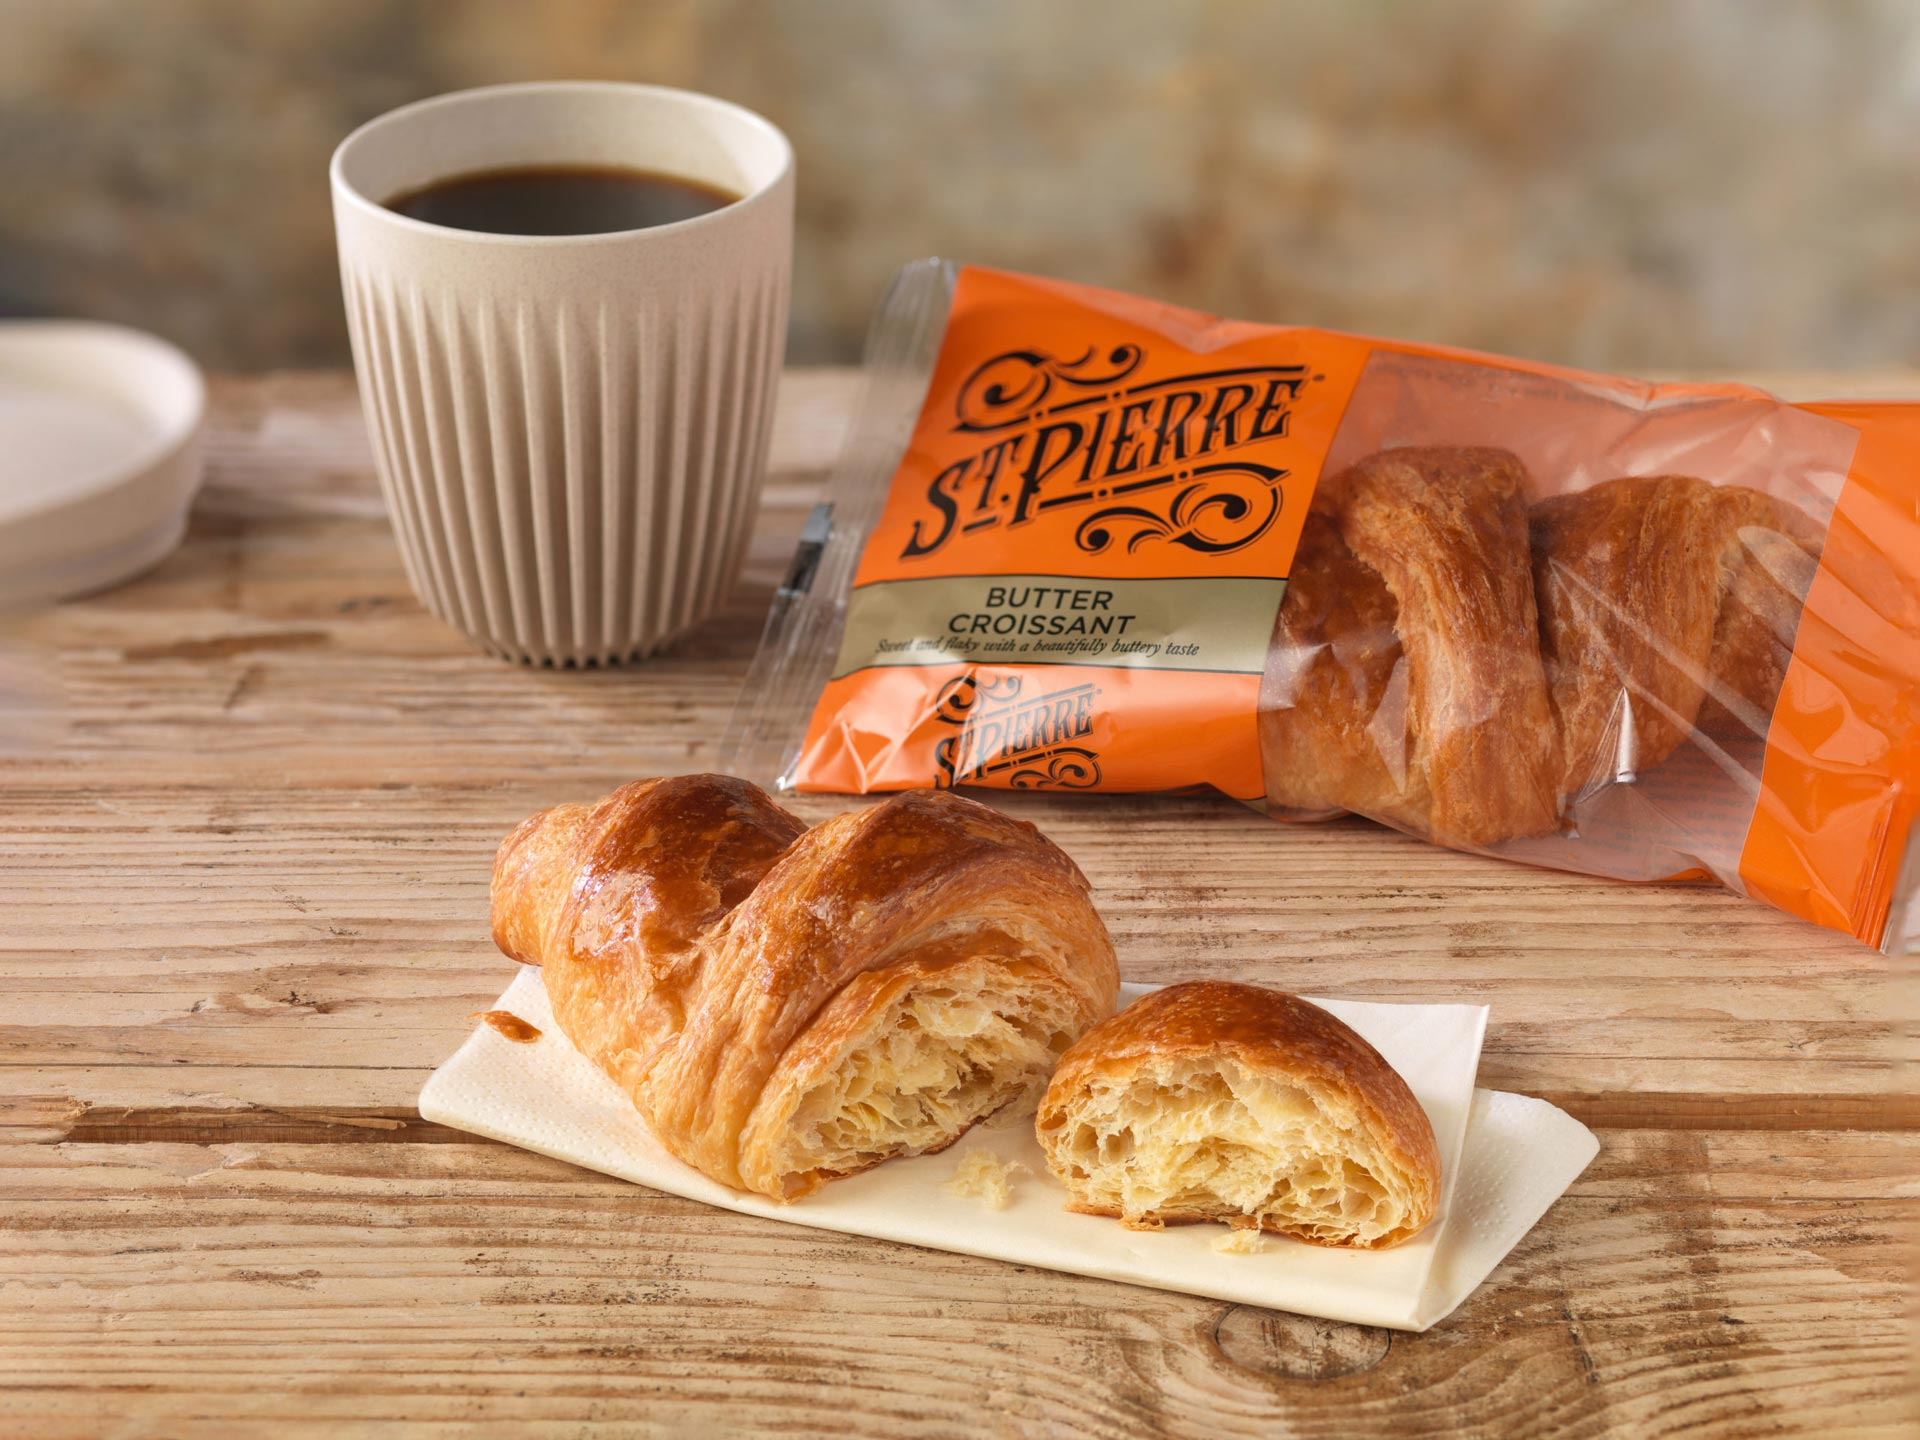 A croissant cut in half on a paper napkin on a wooden table next to a croissant in pack and a black coffee